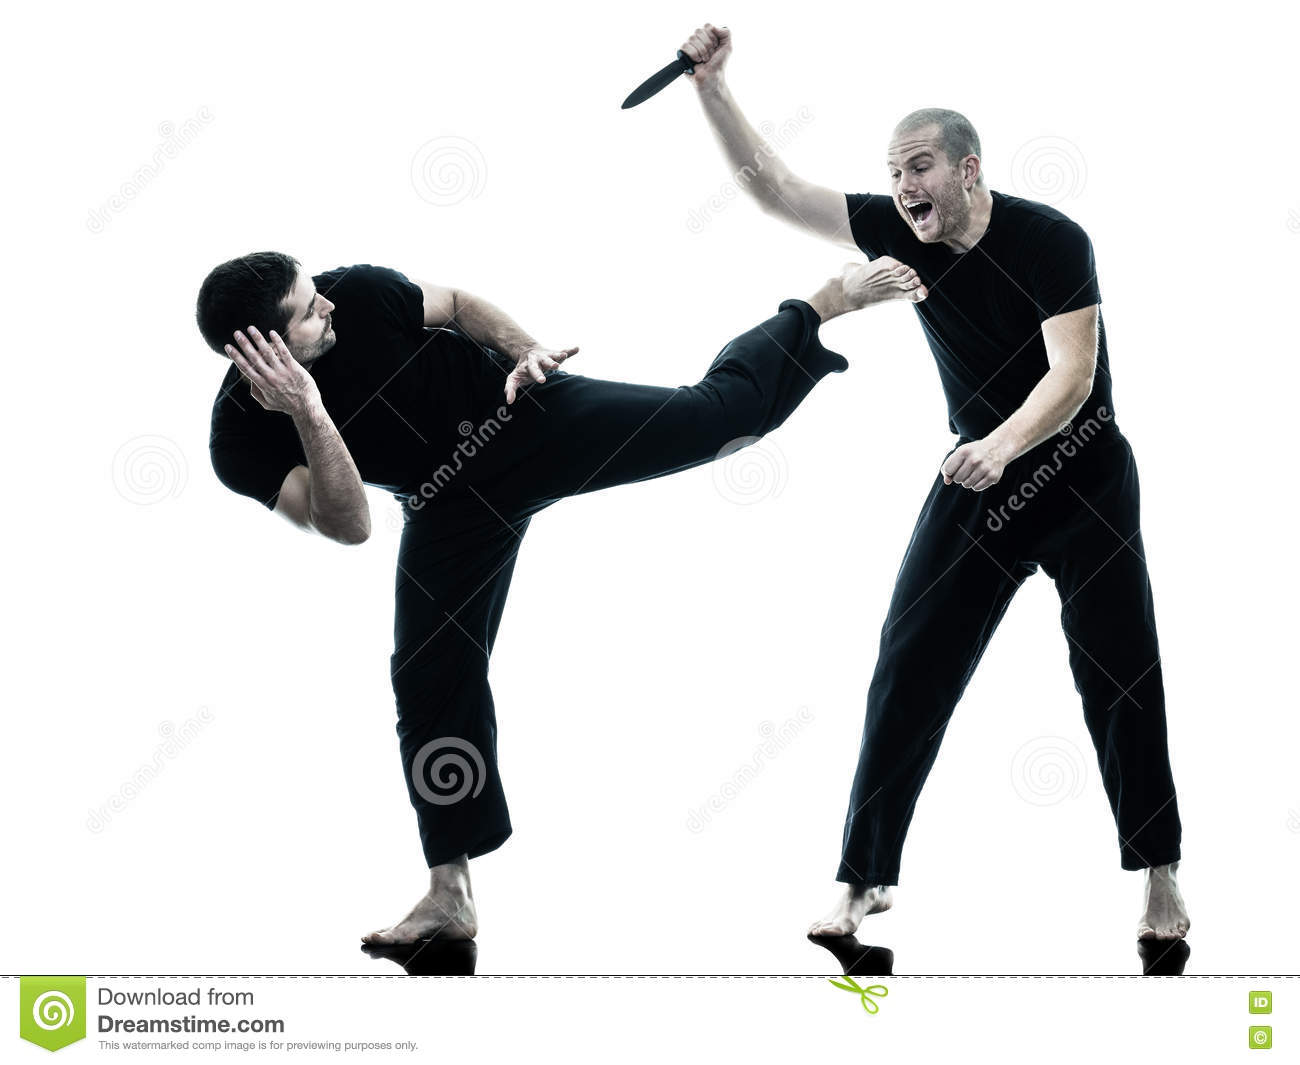 Men Krav Maga Fighters Fighting Isolated Stock Image - Image